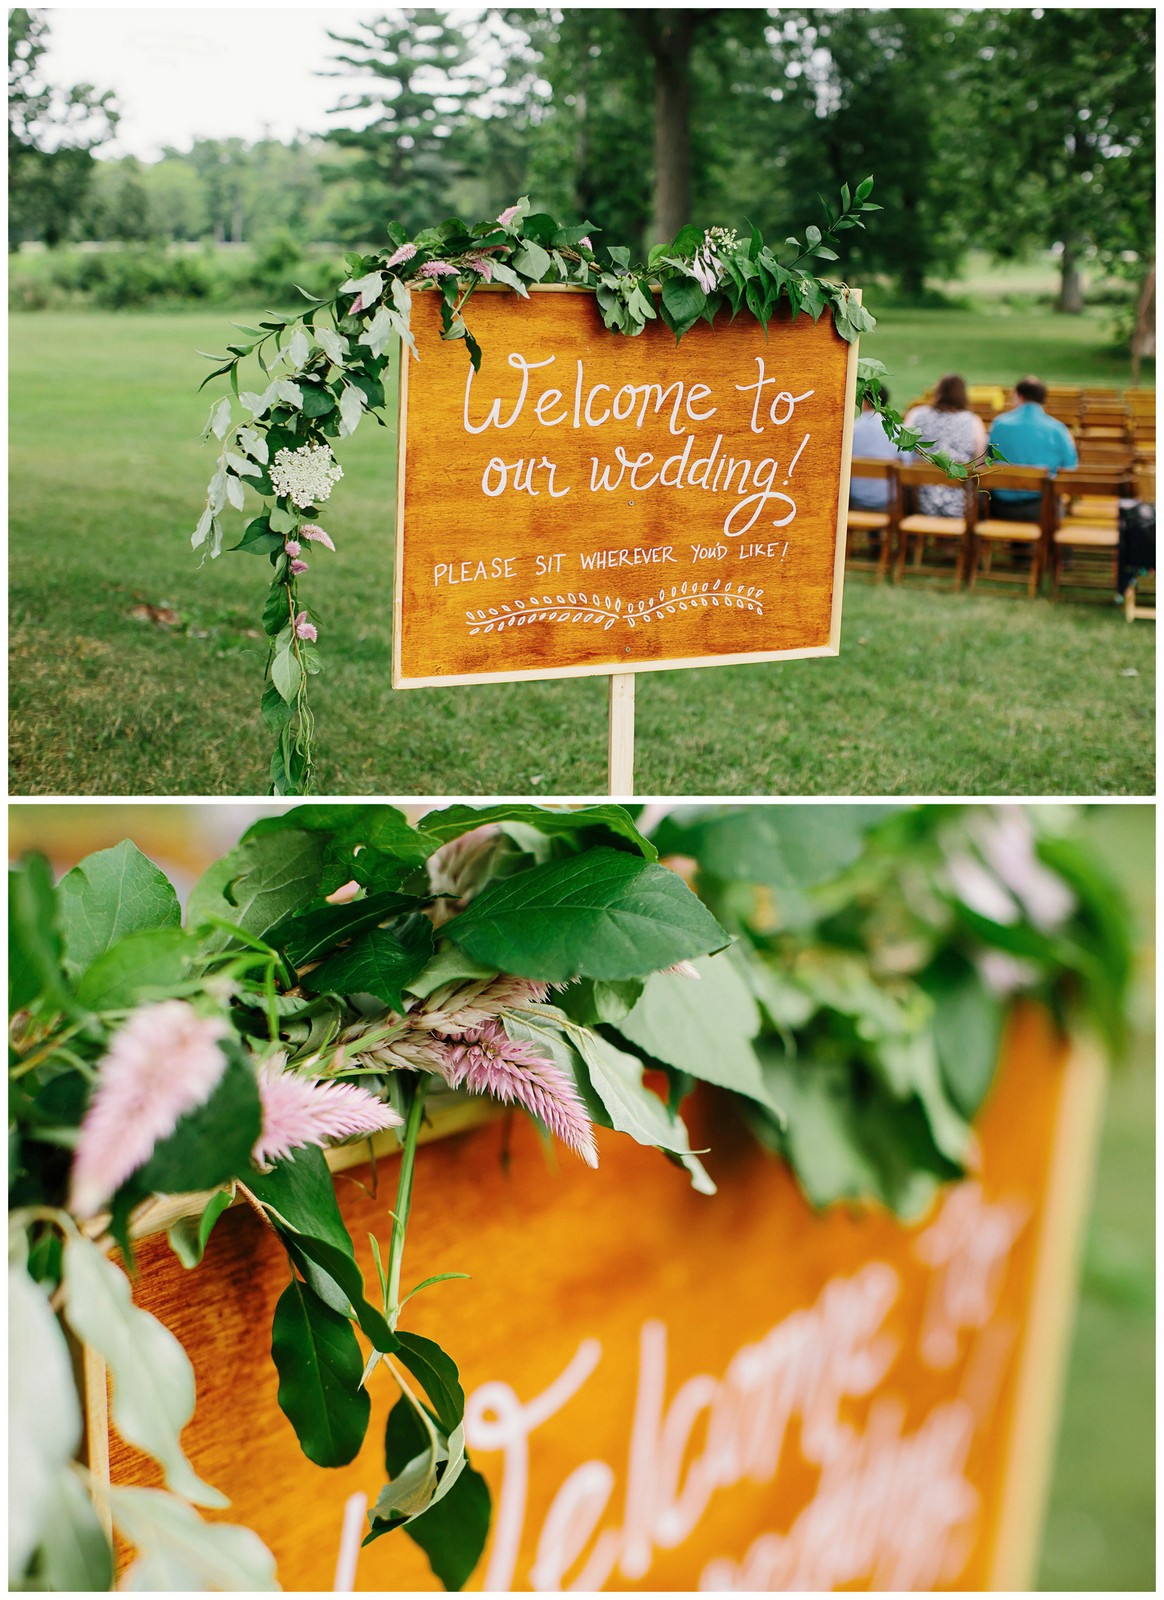 JS Weddings and Events, Grand Rapids Wedding Planner and Floral Designer - Johnson Park Midsummer Nights Dream Summer Garden